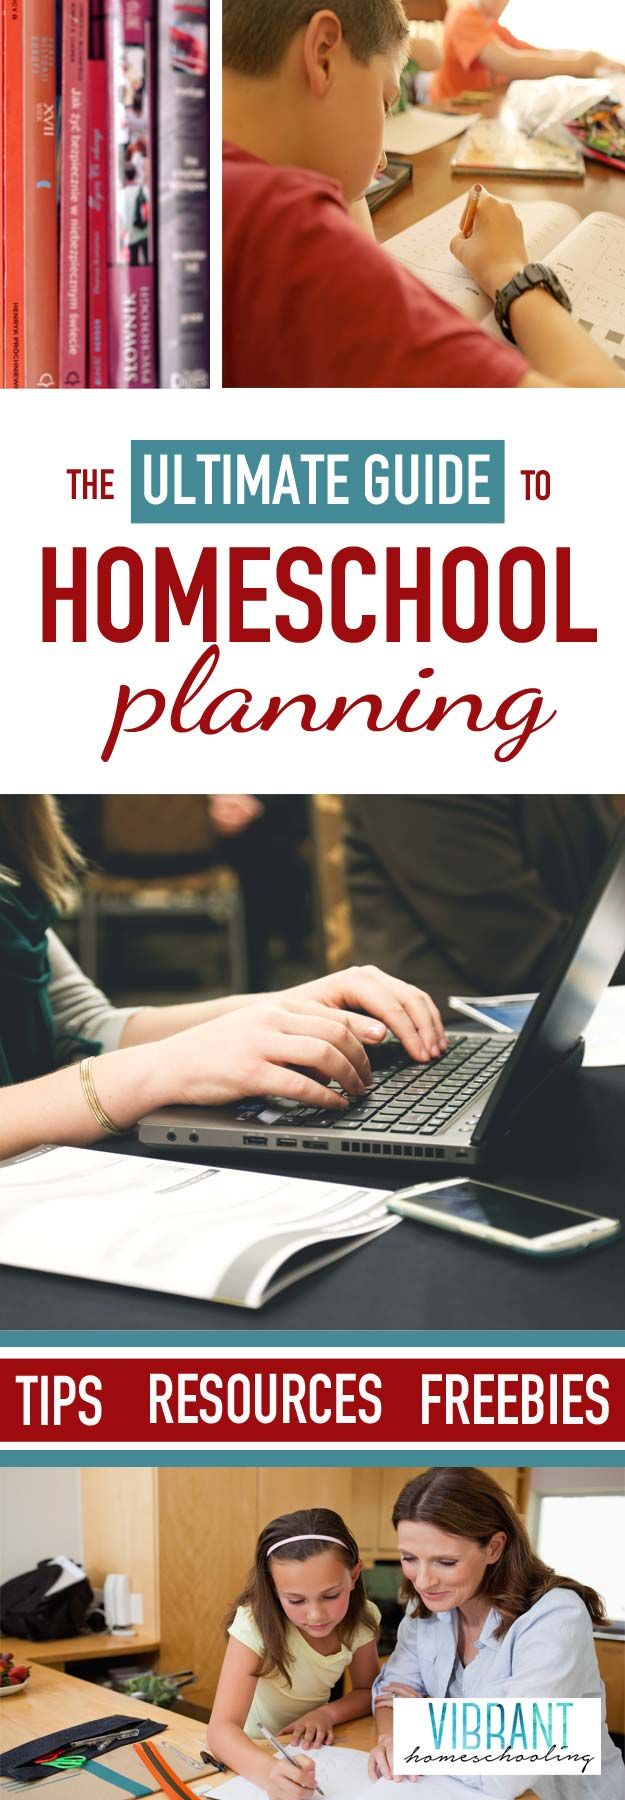 Worksheet Free Online Christian Homeschool 1000 ideas about free online homeschool on pinterest planning can be one of the most daunting parts teaching our kids discover